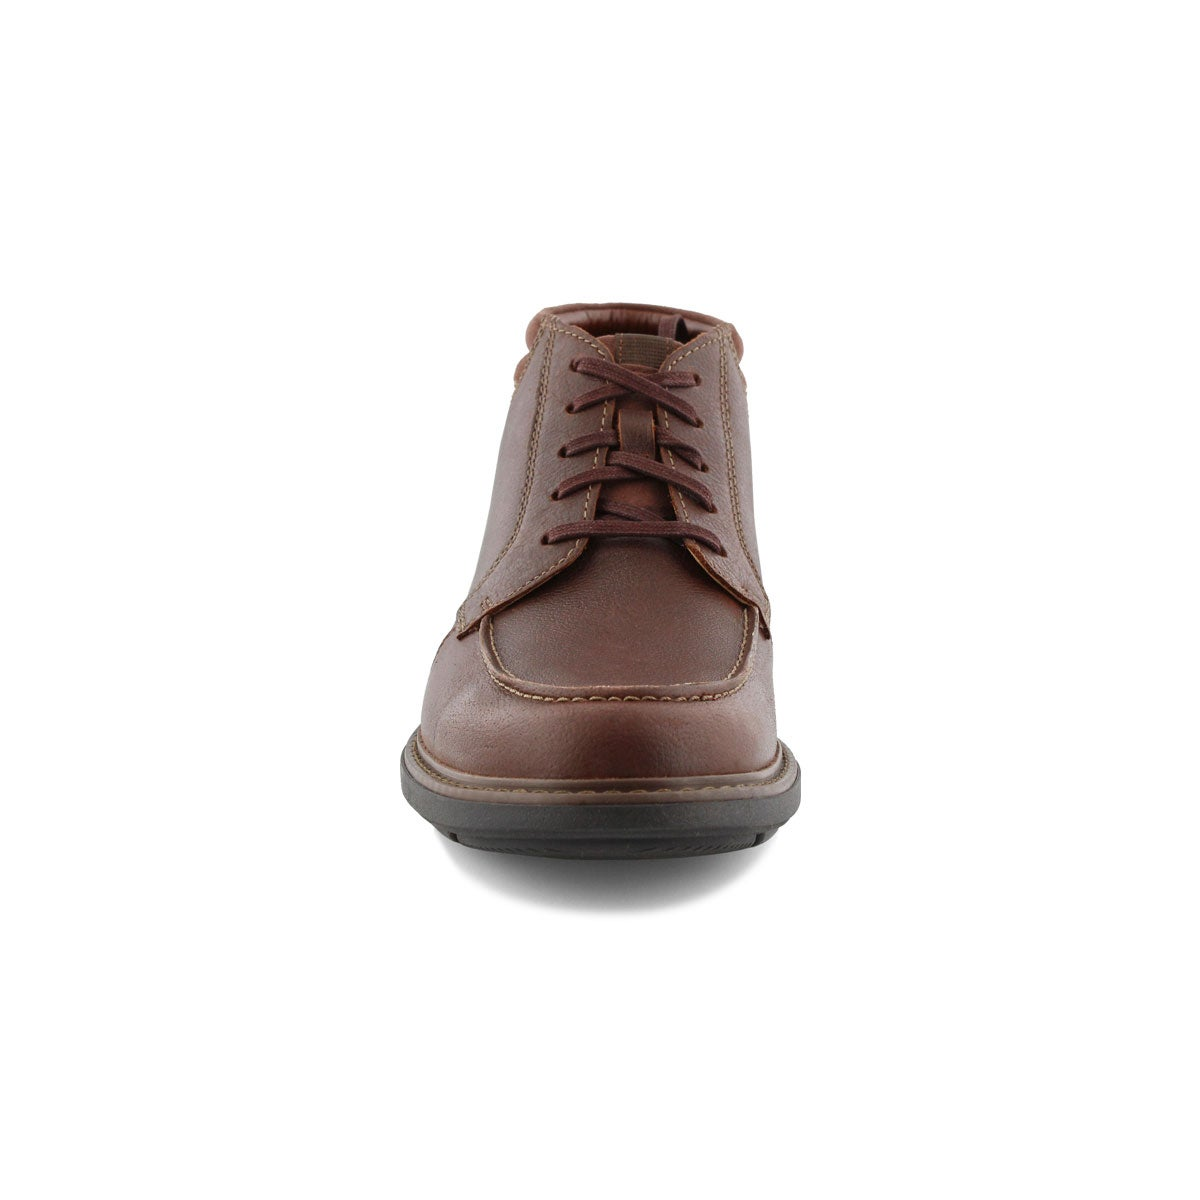 Mns Rendell Rise mahogany ankle boot